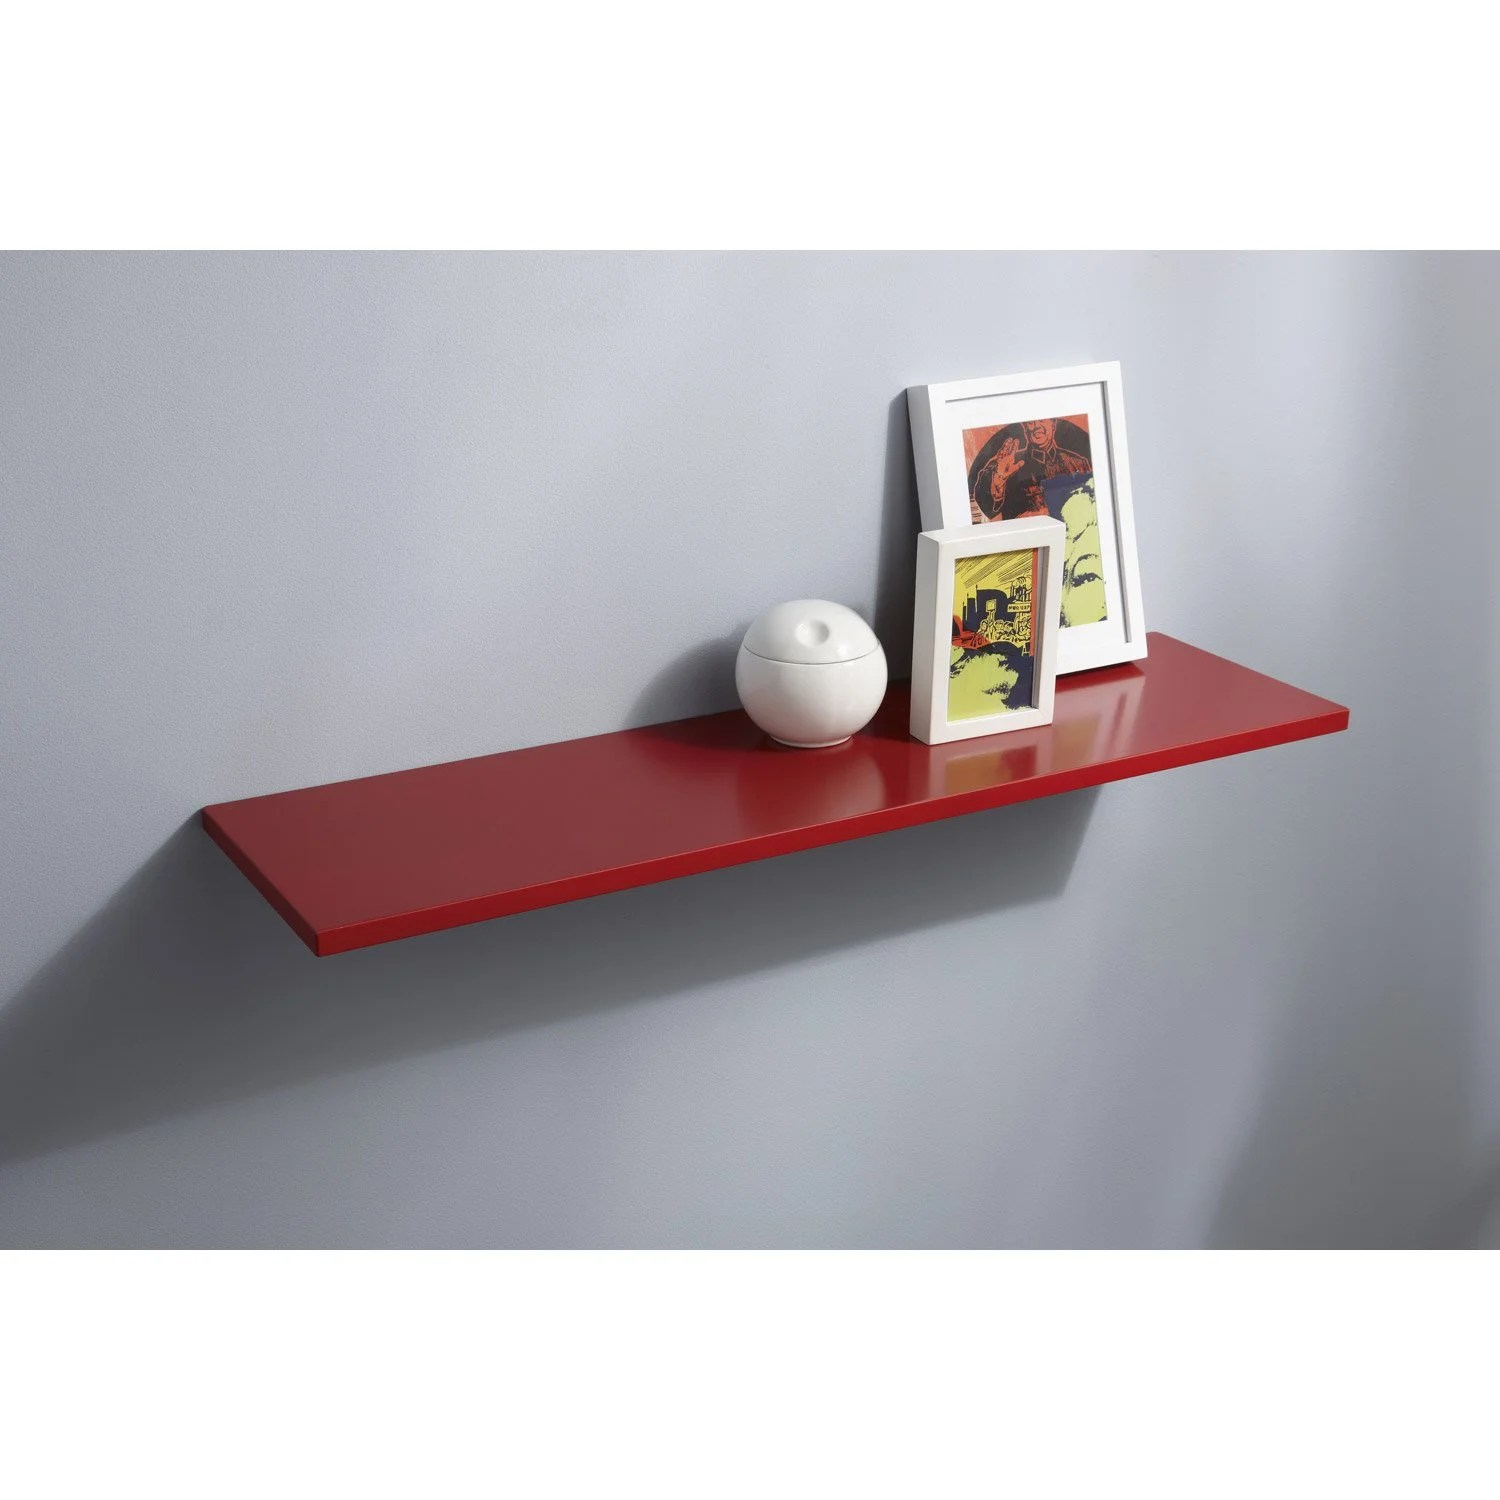 Tablette Murale Arrondie Tablette Murale Rouge Maison Design Wiblia